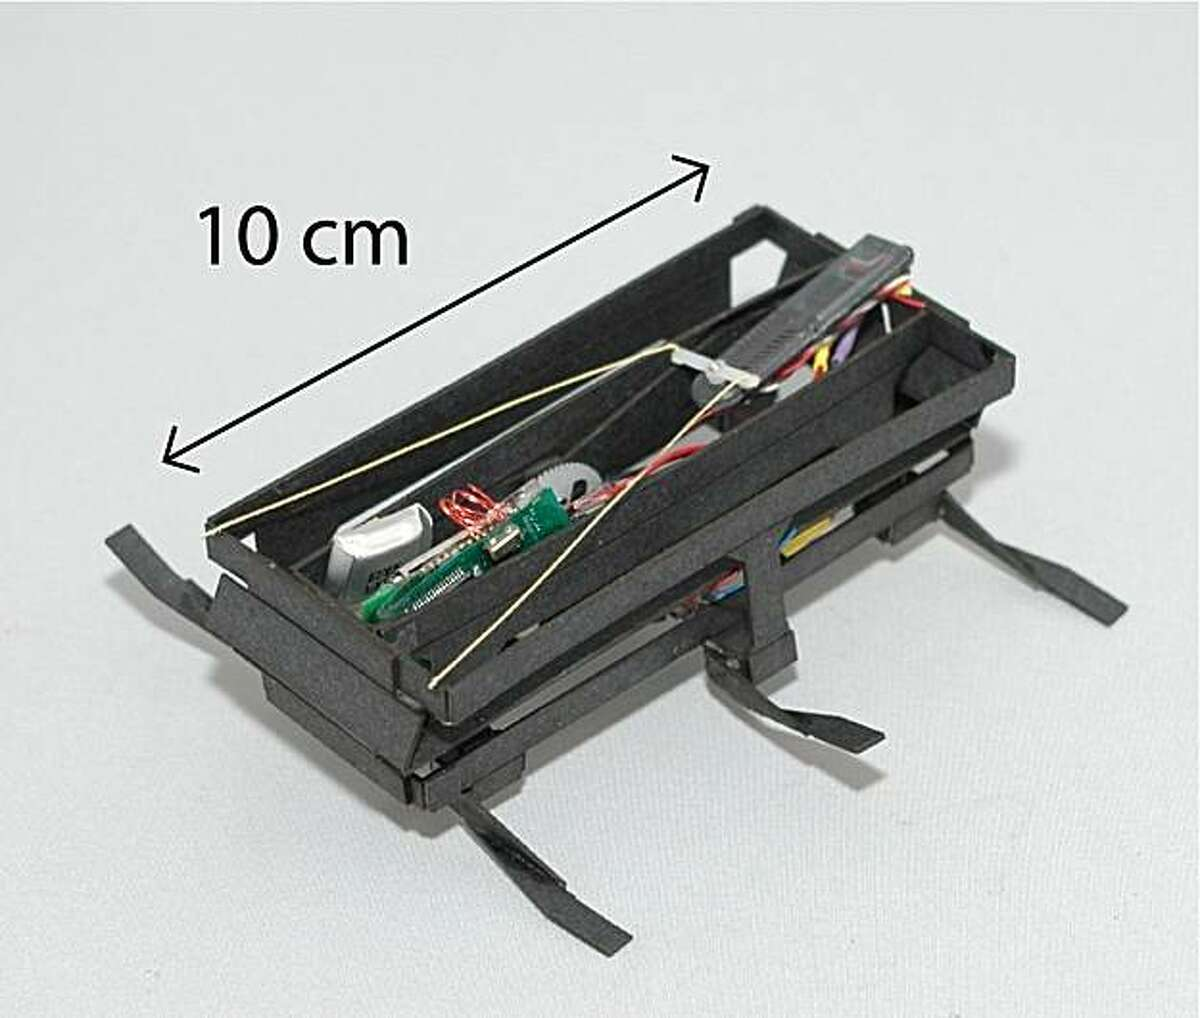 Cheap, lightweight, six-legged robotic cockroaches like the one in the photo may one day be used to save lives.